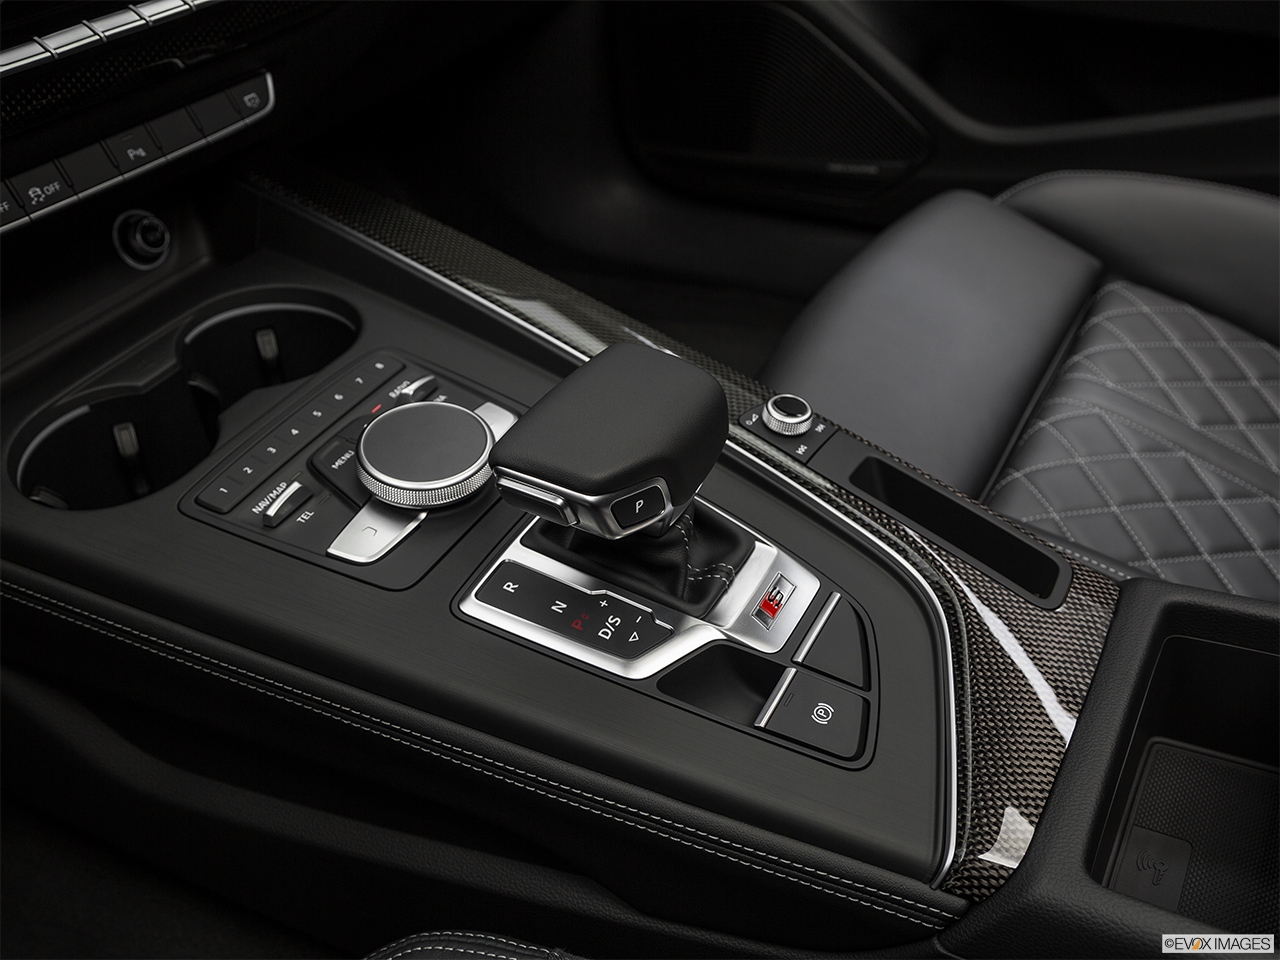 2019 Audi S5 Sportback Premium Plus 3.0 TFSI Gear shifter/center console.